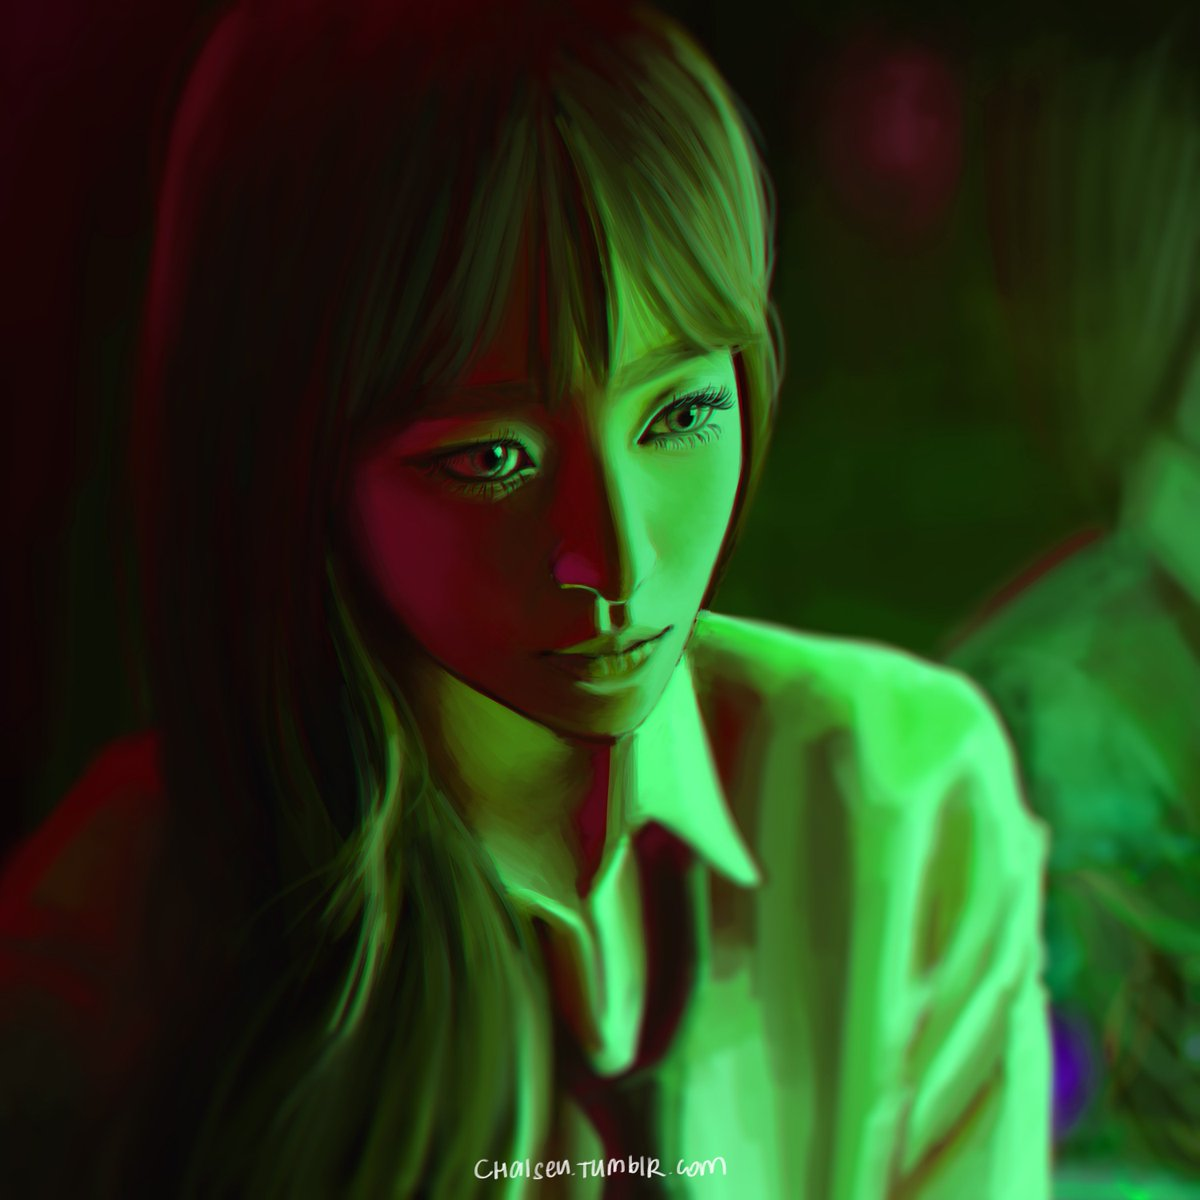 Jeonghan may be my muse but Hani was here first rghethjrt. #exid #hani #exidfanart #hanifanart @EXIDofficial